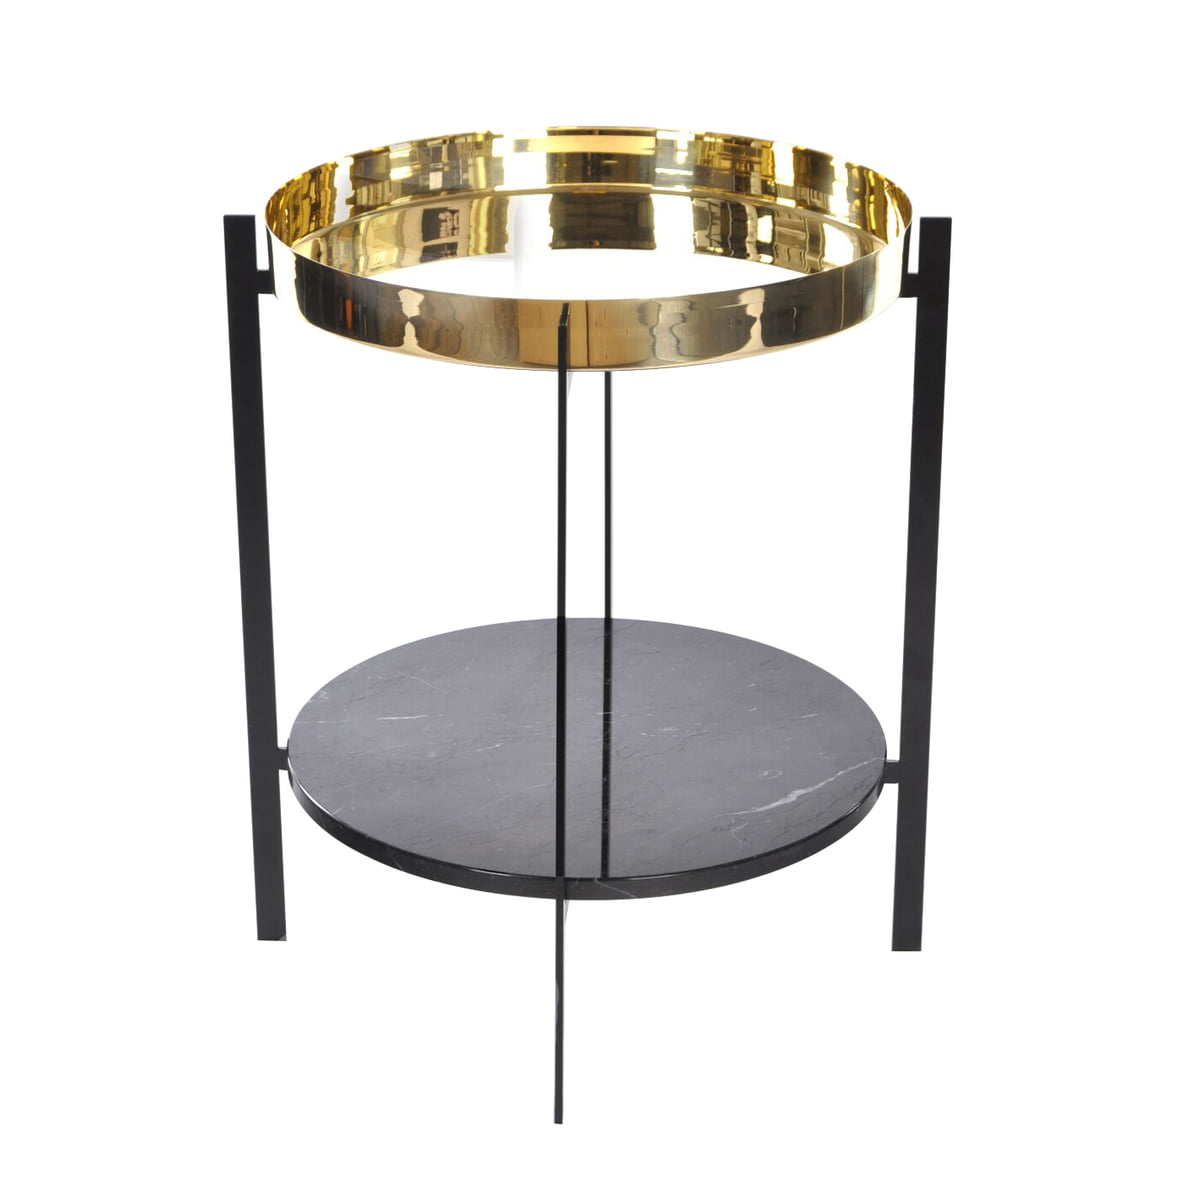 Beau Deck Side Table By Ox Denmarq In Black Marble / Brass